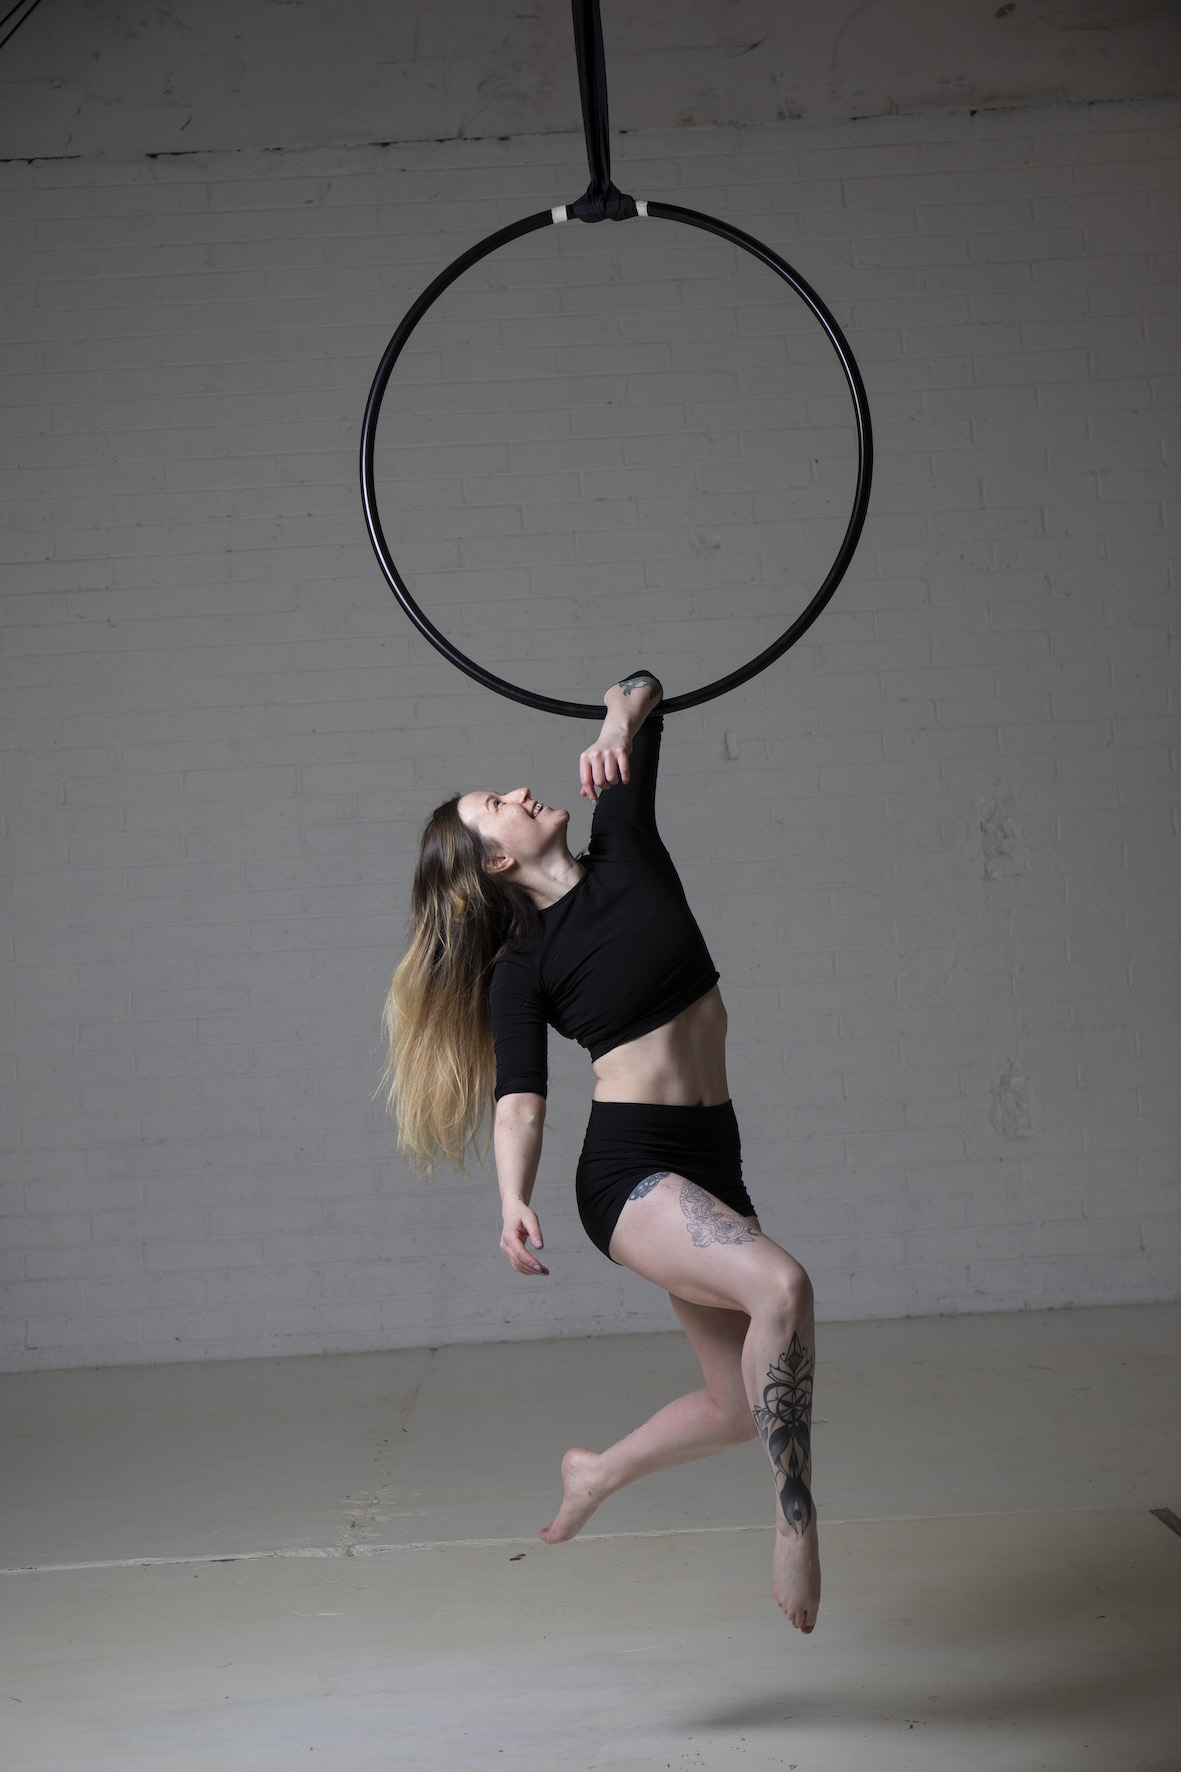 Acrobat on the Ring